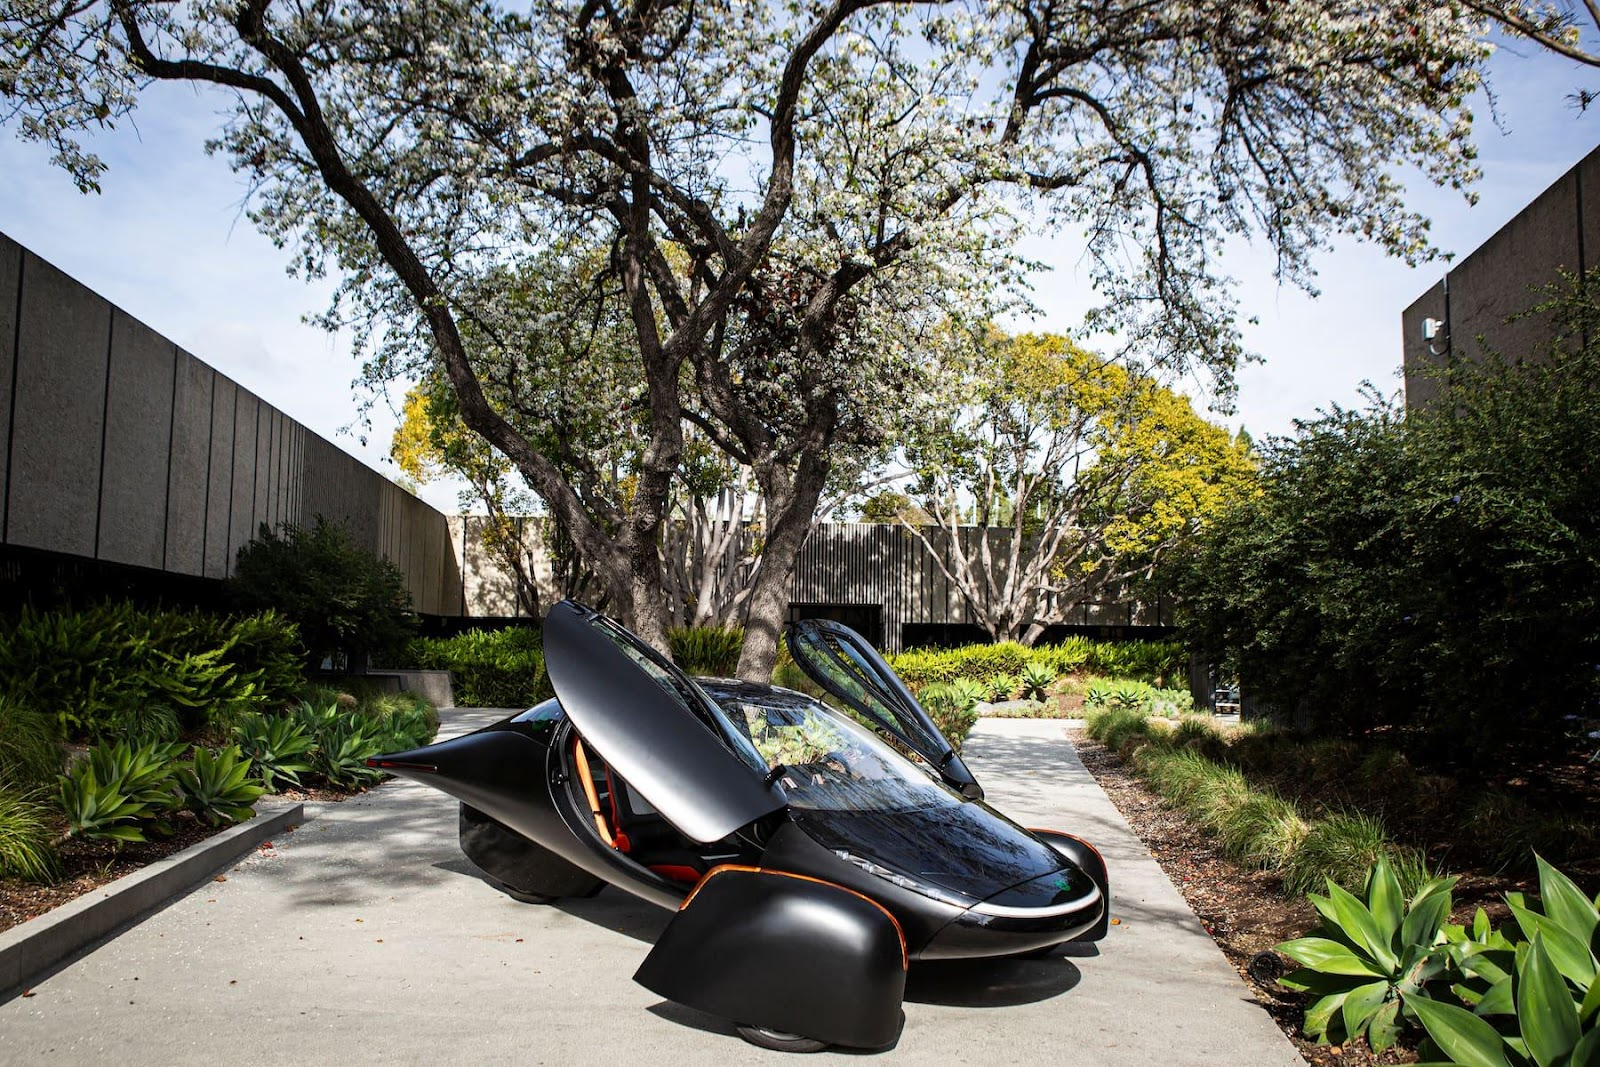 The Aptera can go 150 miles after just 15 minutes at an ordinary charging station. Starting price is $25,900.